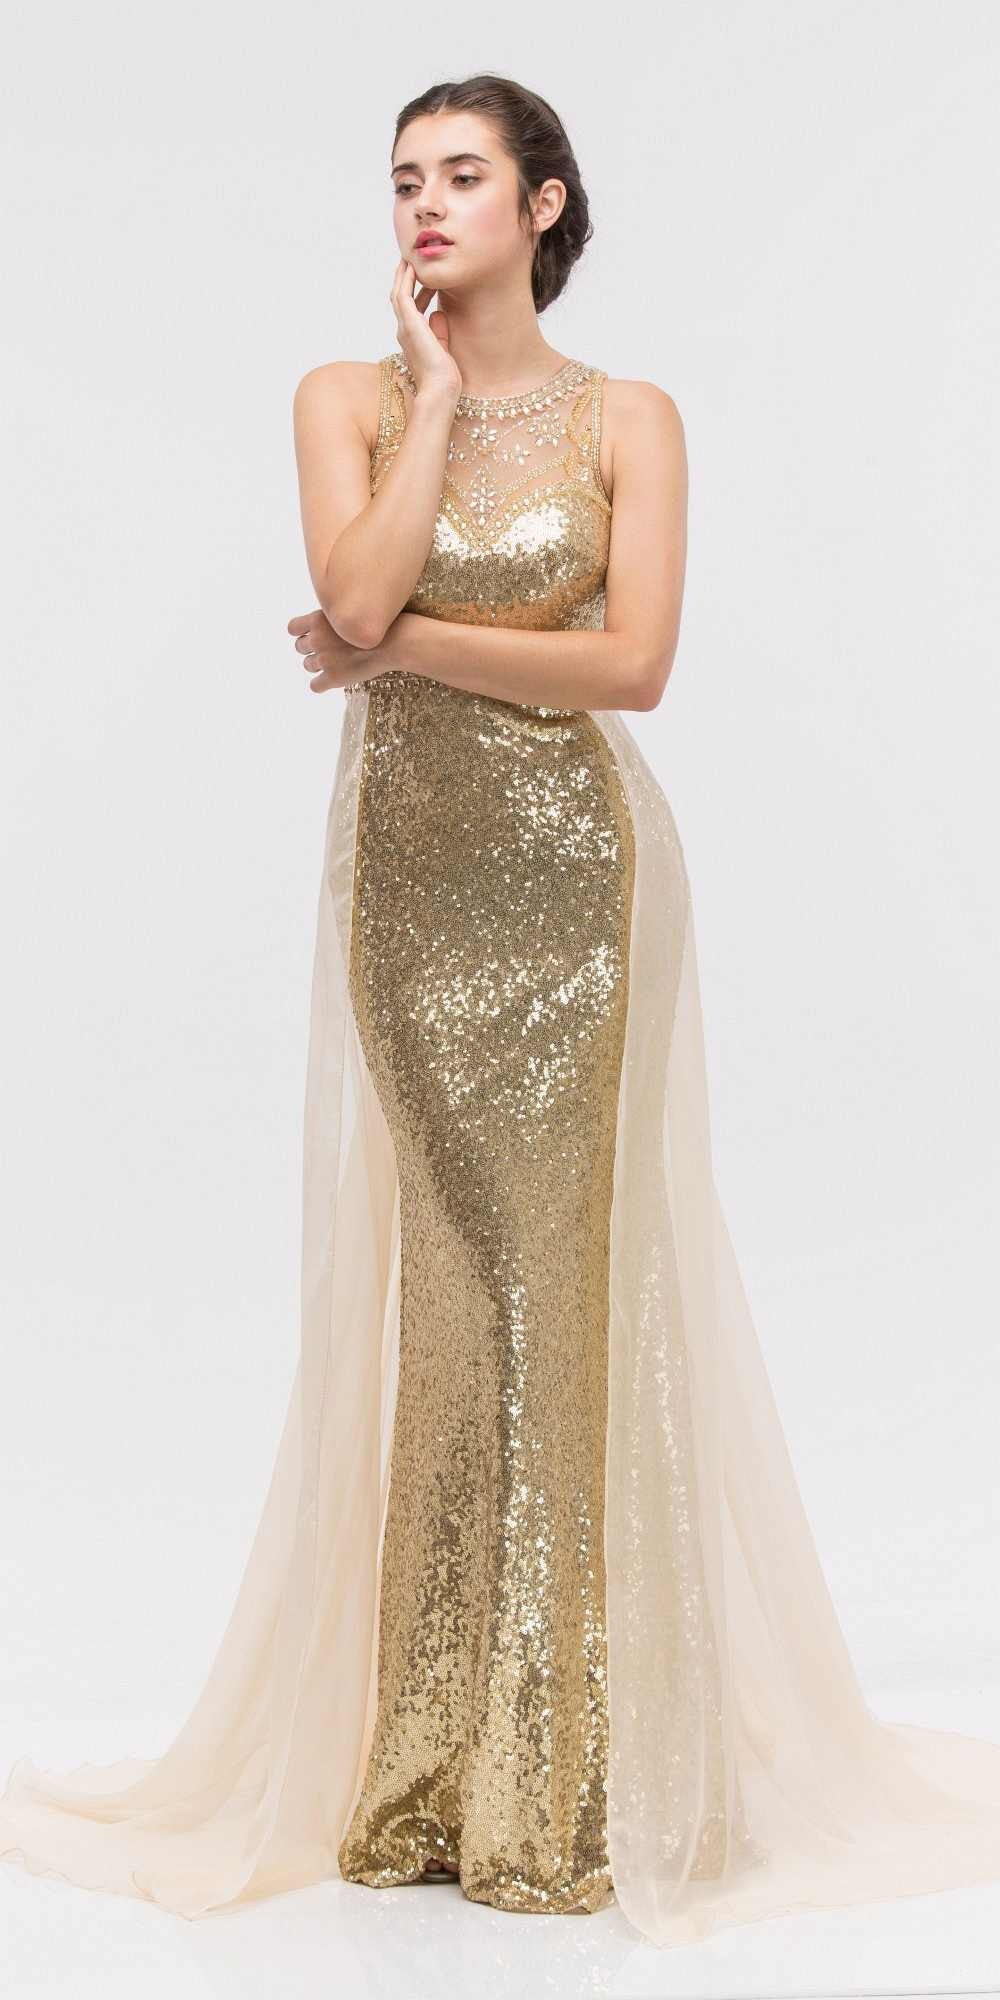 Illusion Sequins Prom Gown Sleeveless with Sheer Train Burgundy ...